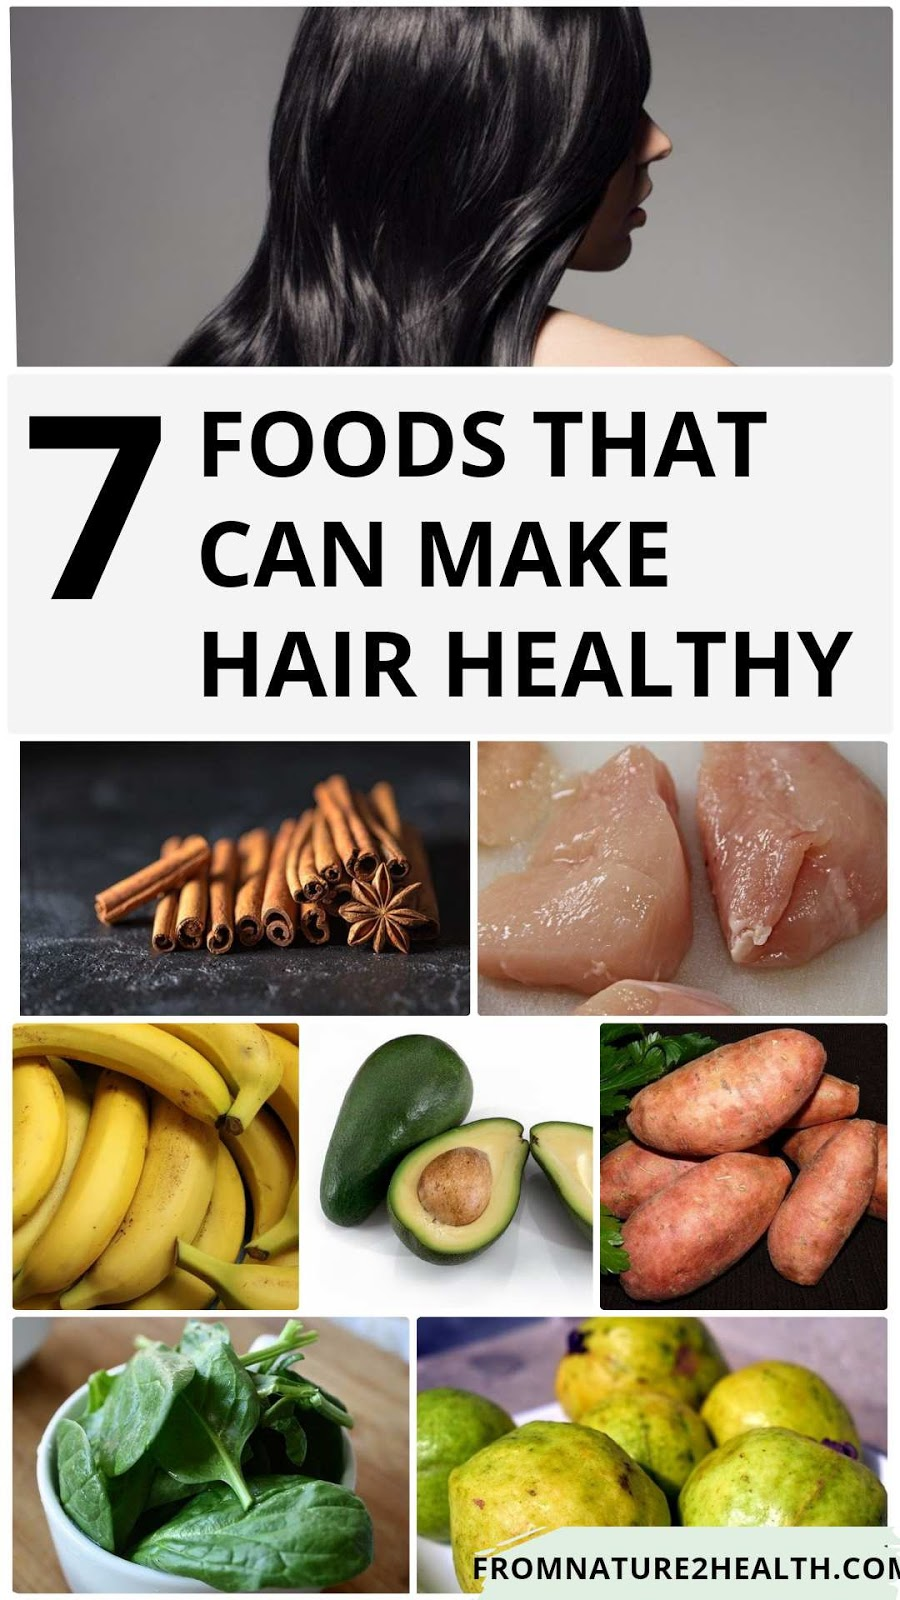 7 Foods That Can Make Hair Healthy